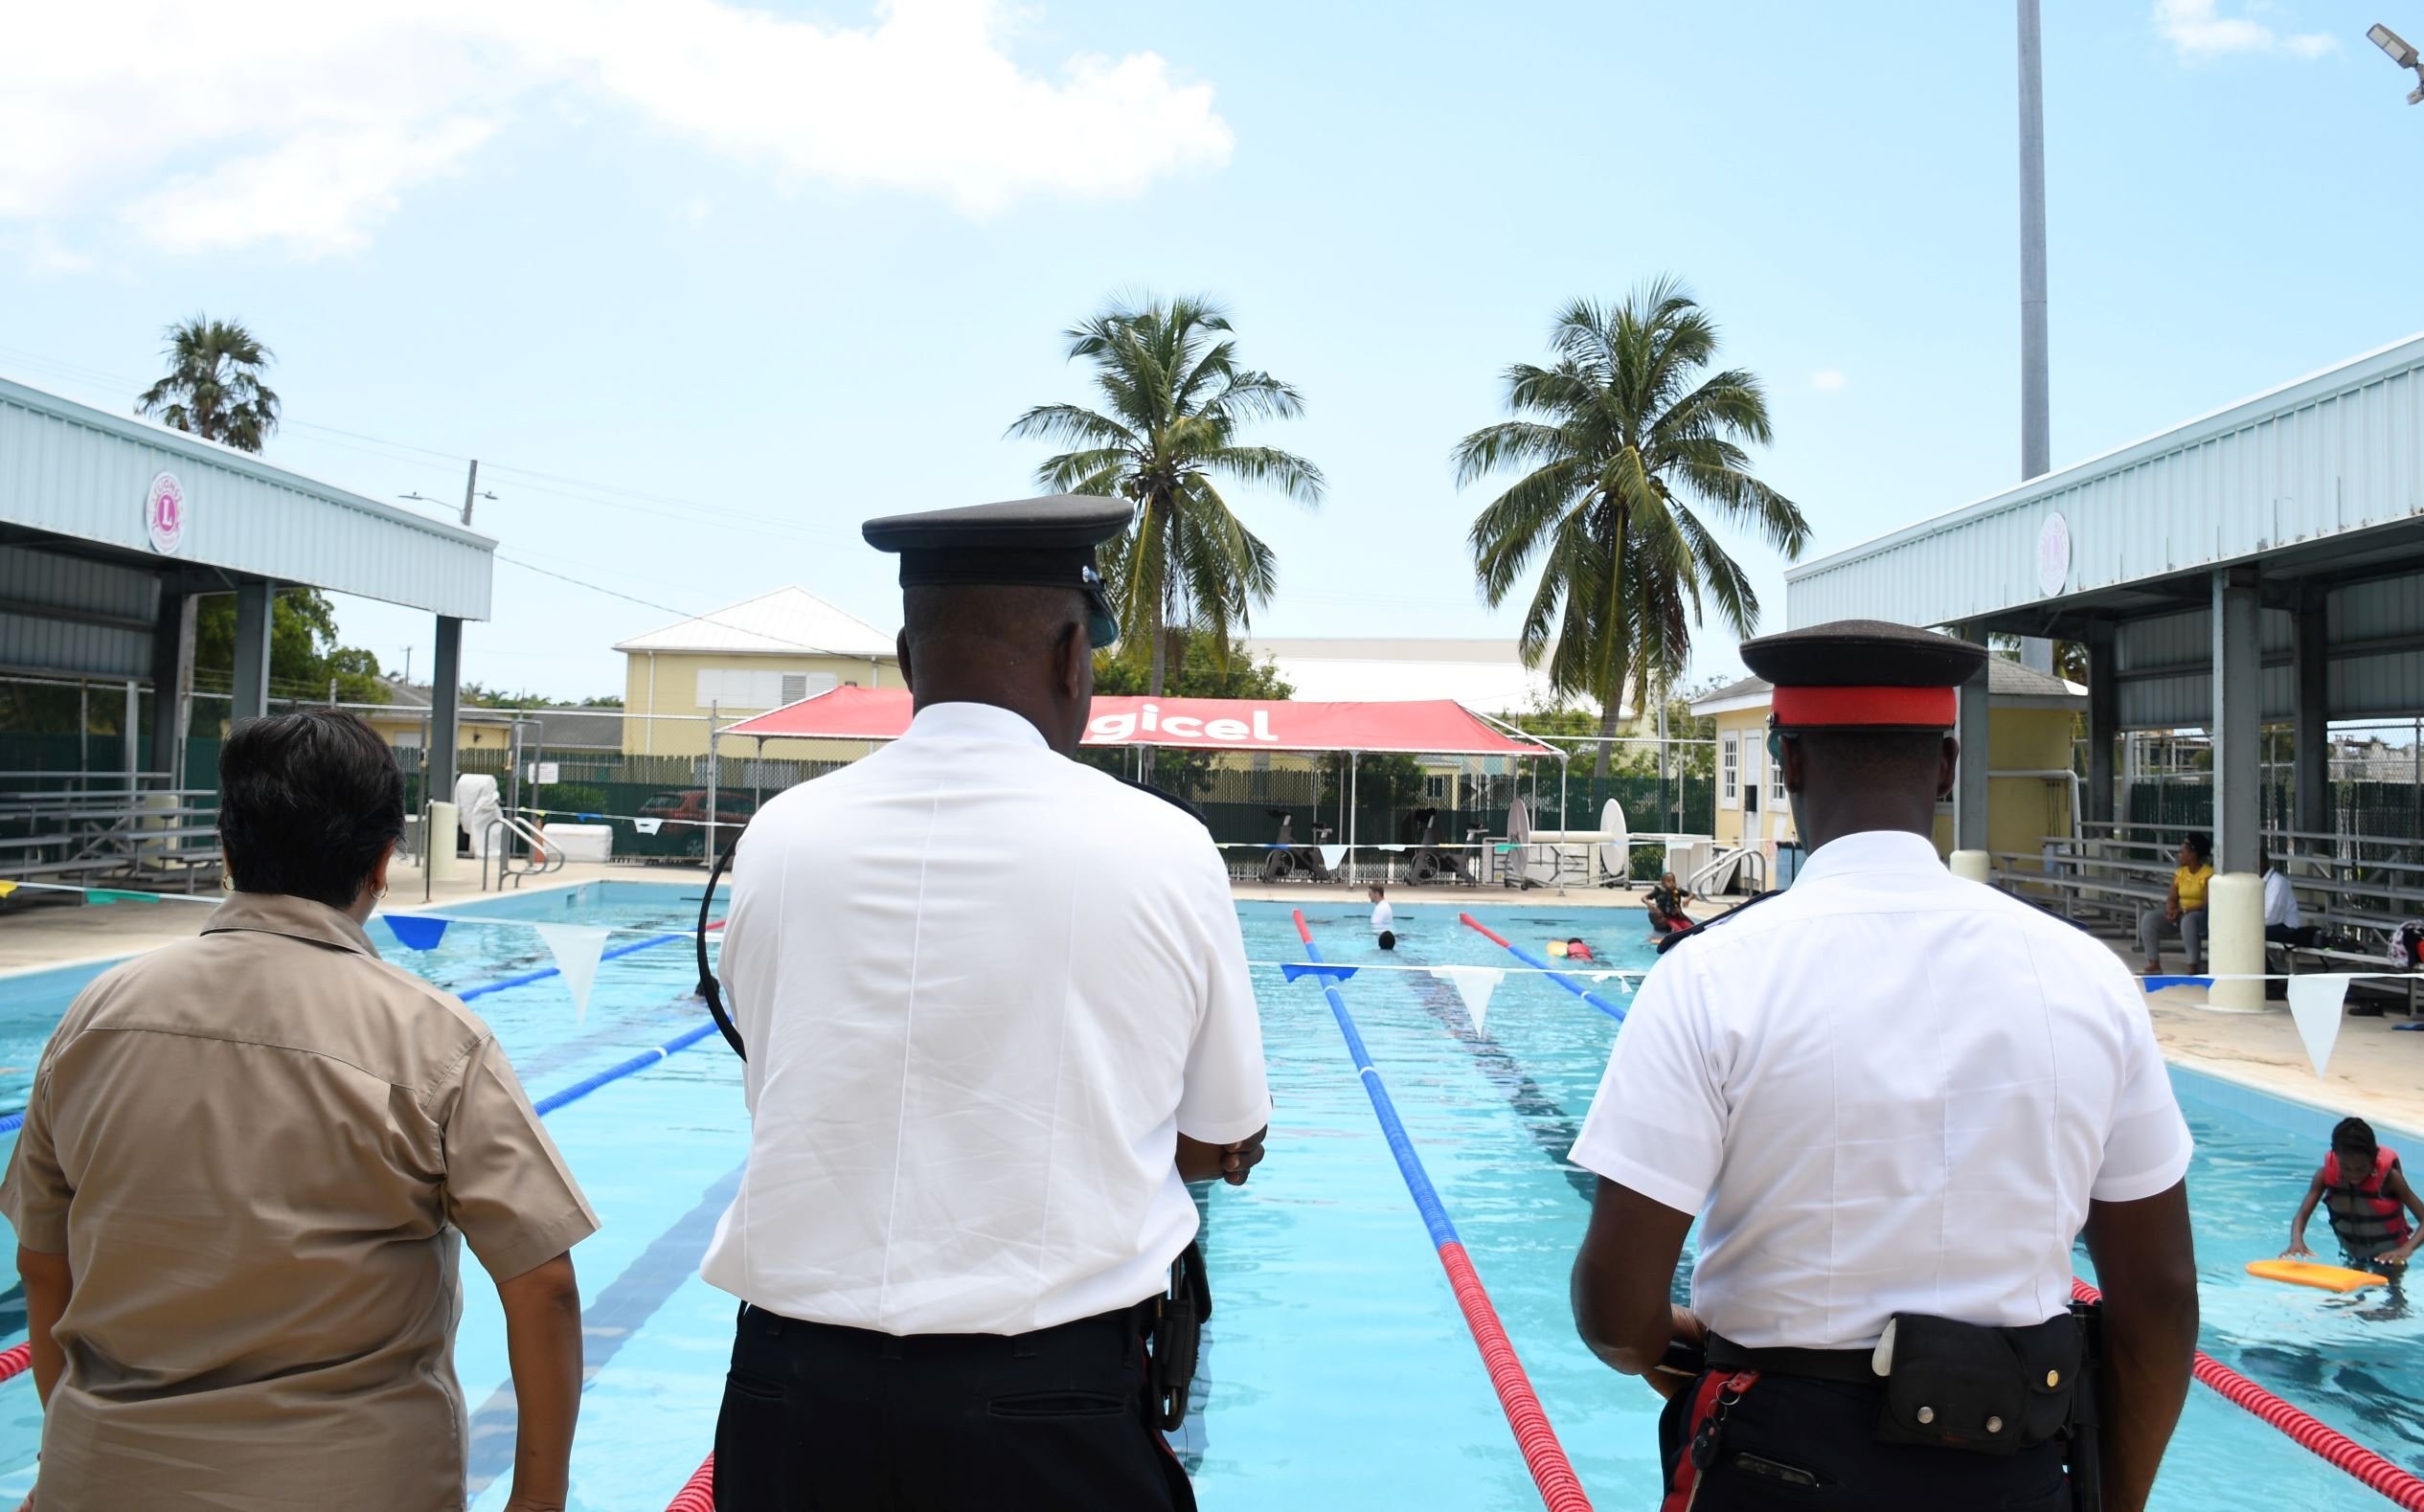 Susan Poy Fong-Ramkissoon of the Primary Inclusion Unit, observes the swimming session along with Inspector Myles and PC Donaldson.